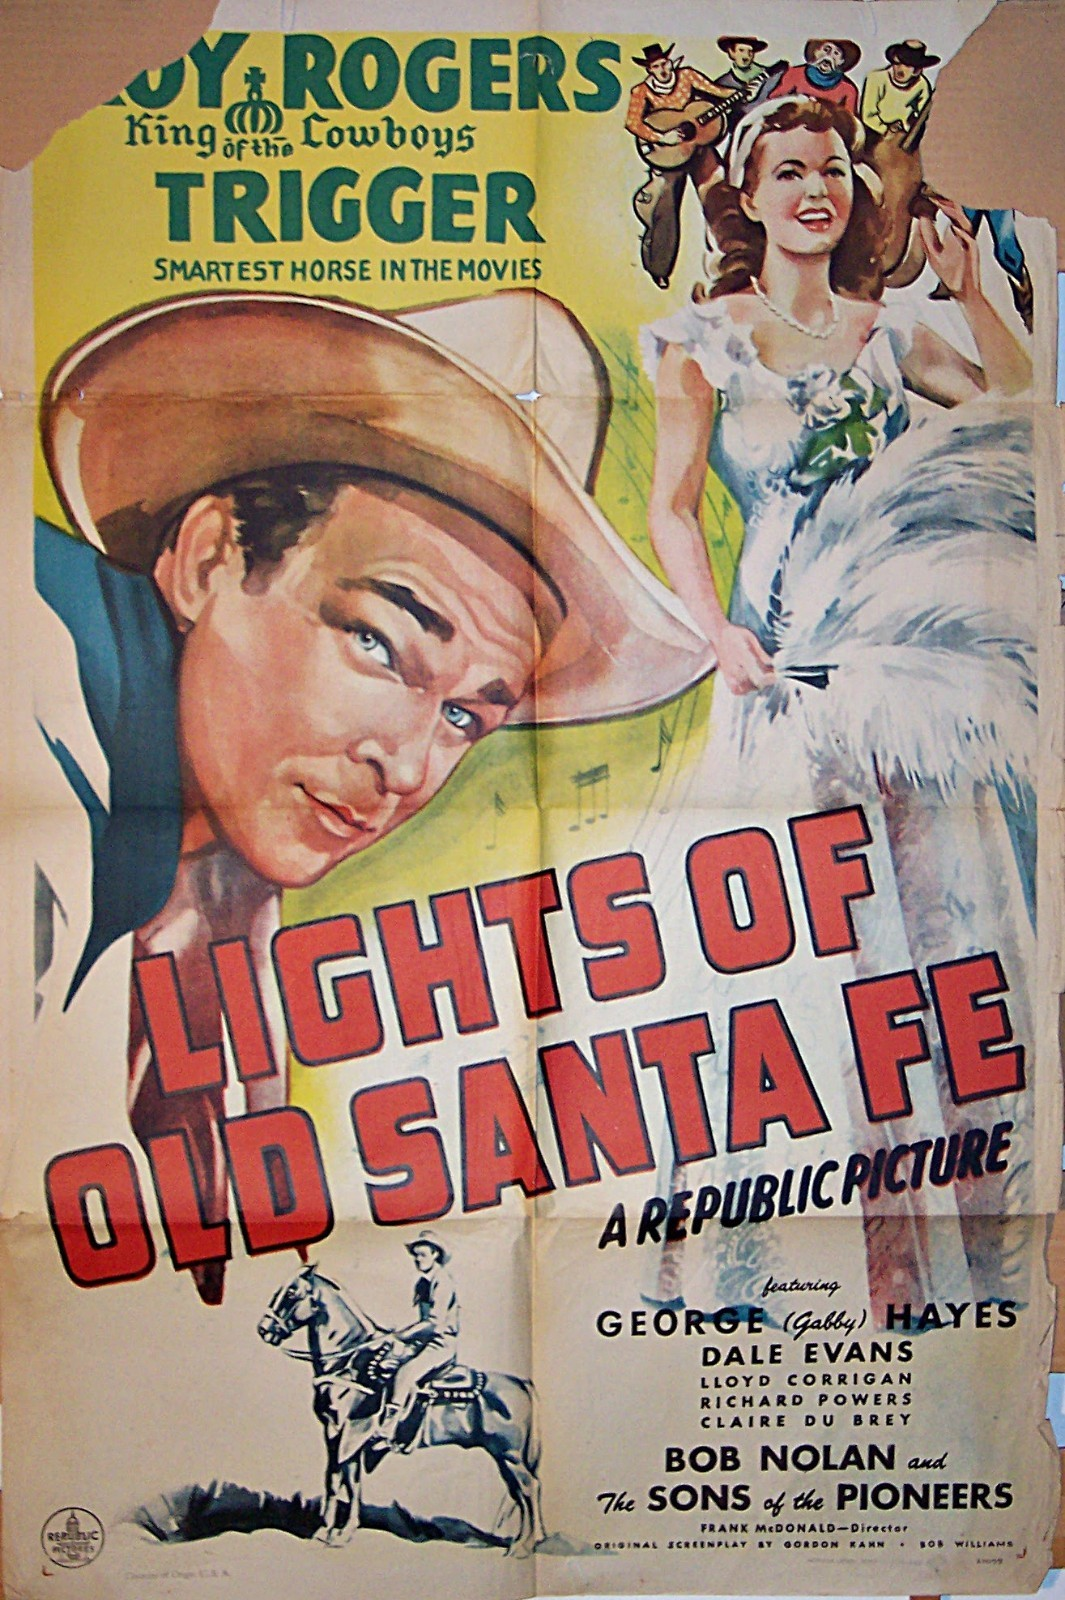 Pictured is a US one-sheet promotional poster for the 1944 Frank McDonald film Lights of Old Santa Fe starring Roy Rogers.